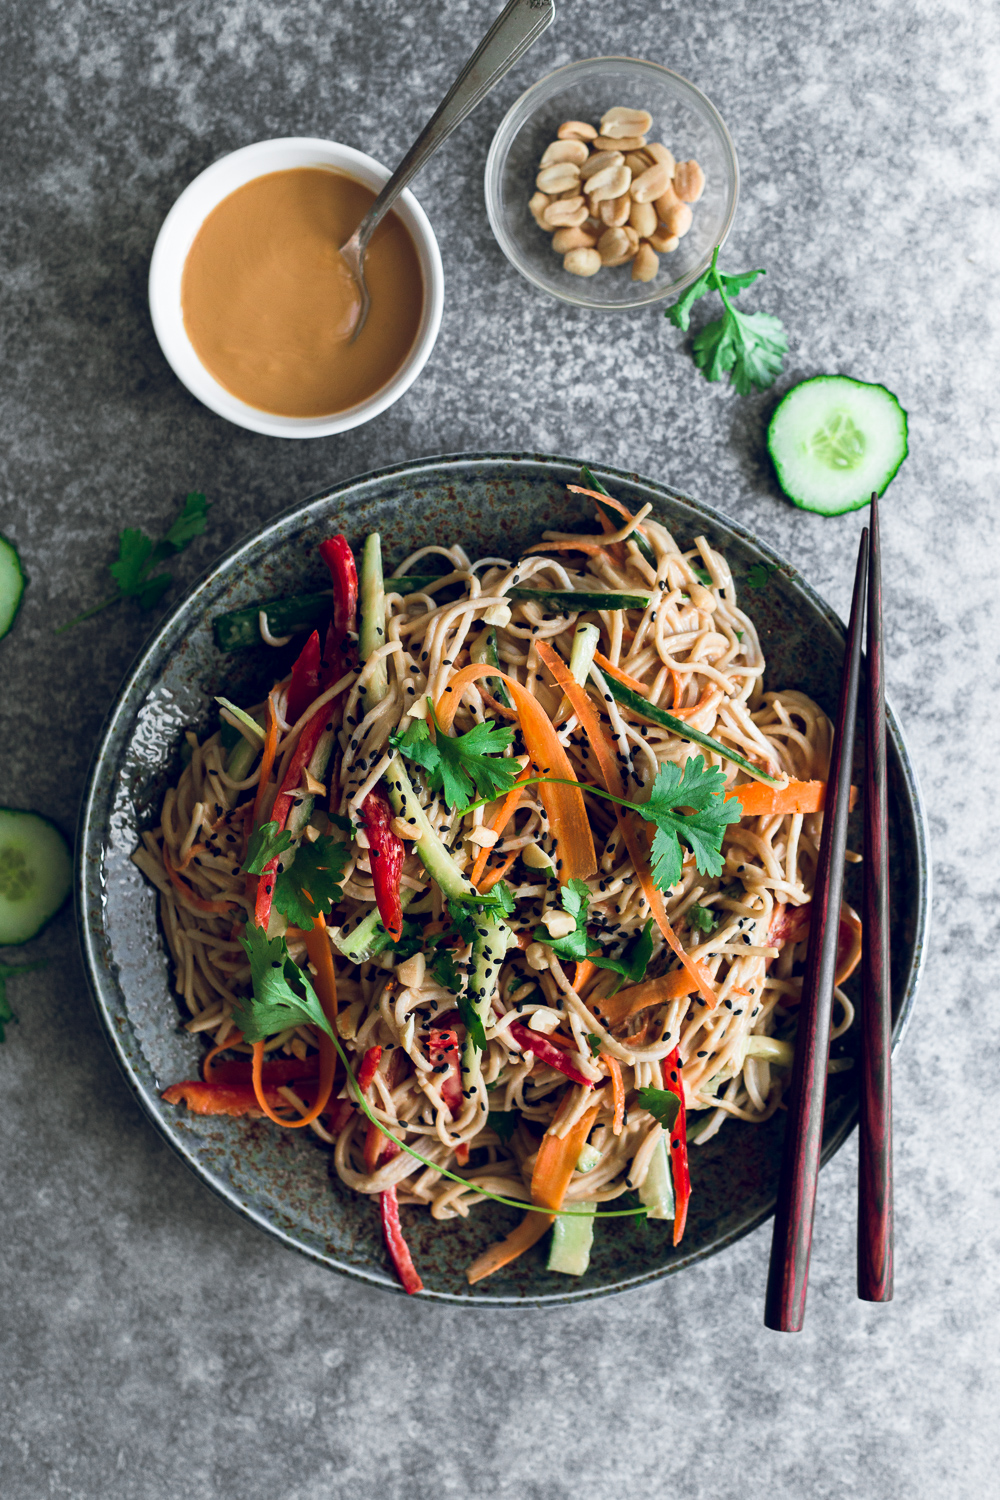 A delicious and healthy Vegan Peanut Soba Noodle Salad Recipe. Soba Noodles and Colorful Veggies dressed in an easy and delicious Peanut Sauce. #vegan #peanut #japanese #soba #noodle #salad #summer #simple #healthy #peanutbutter #lunchbox #packedlunch #cold